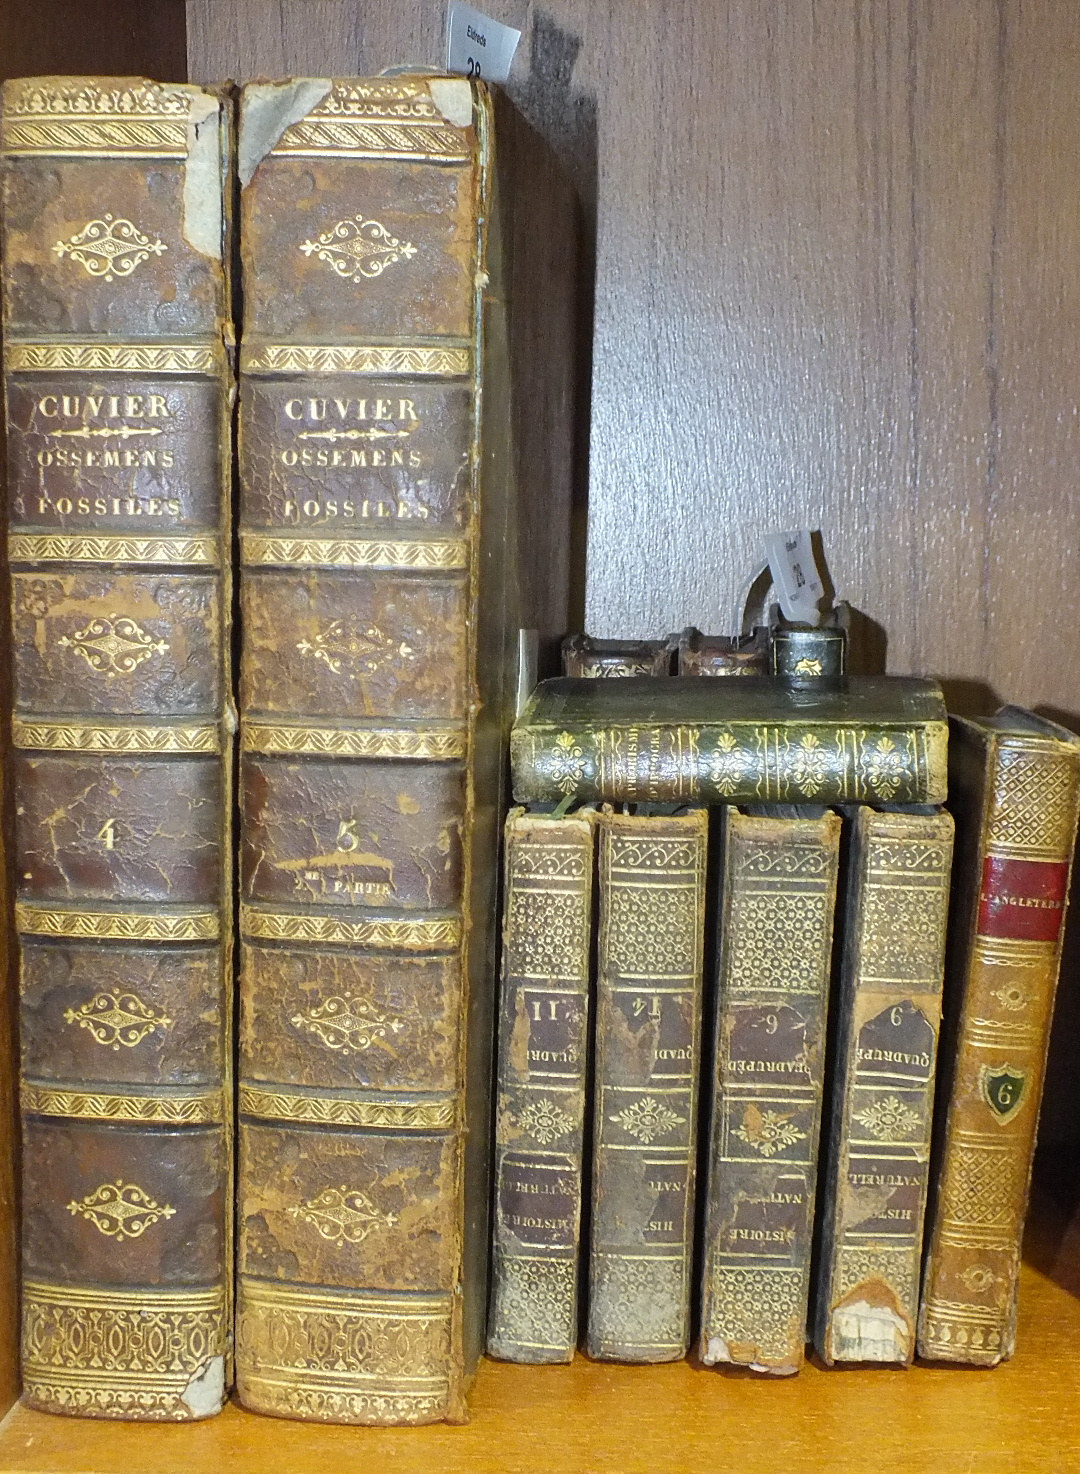 Lot 28 - Cuvier (Georges), Recherches sur les Ossemens Fossiles, Vols IV and V only, 72 engr plts, some fldg,